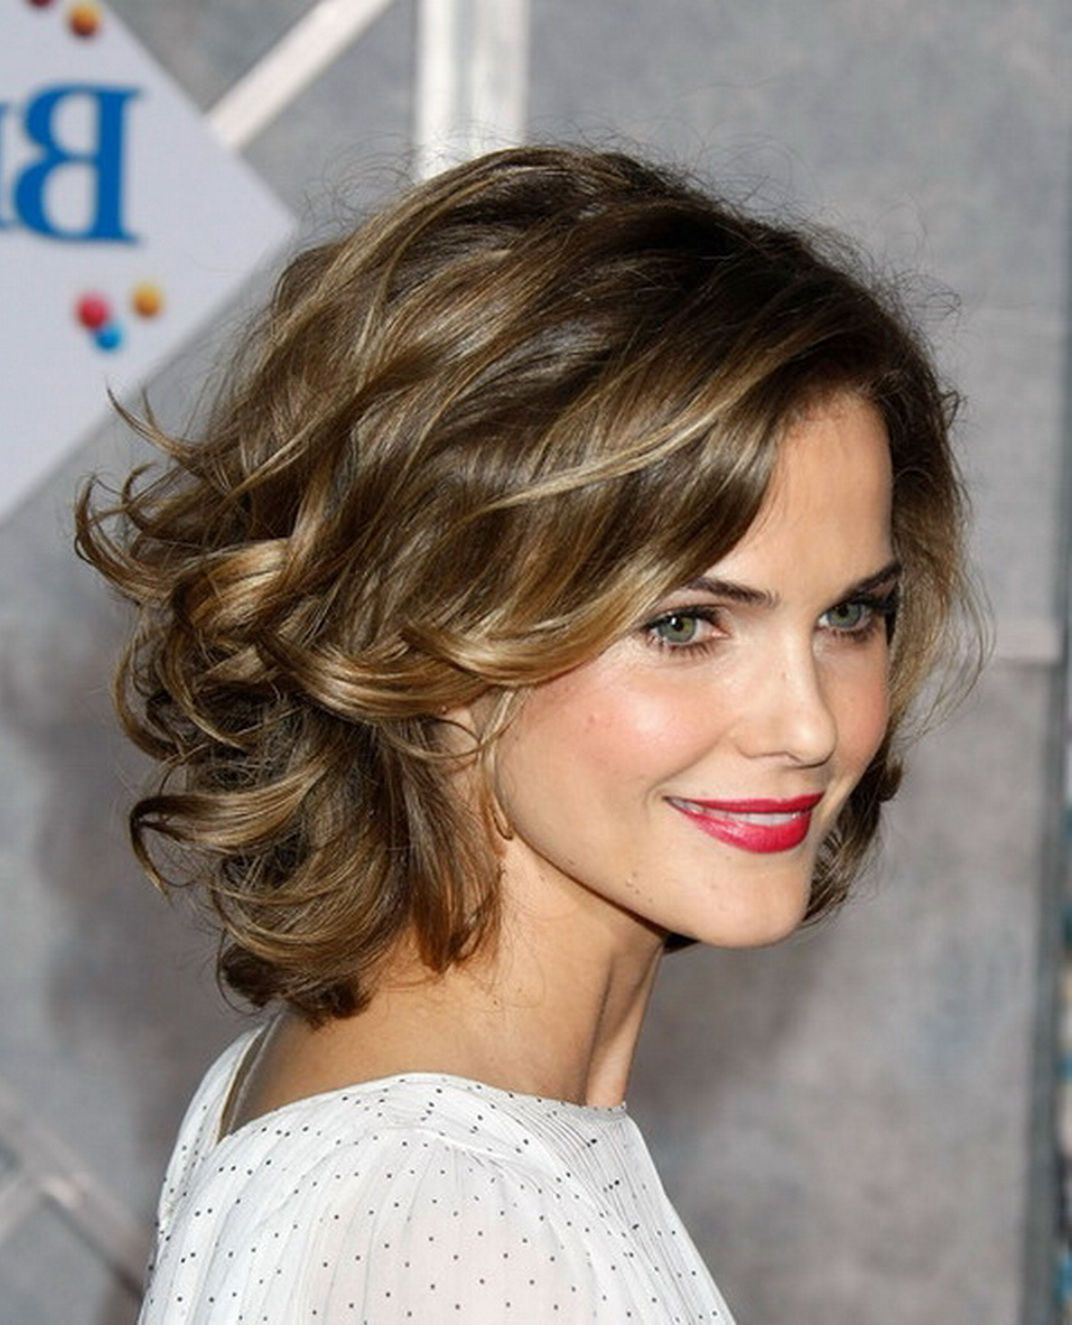 10 Eye-Catching And Amazingly Beautiful Short Hairstyles   Thick ...